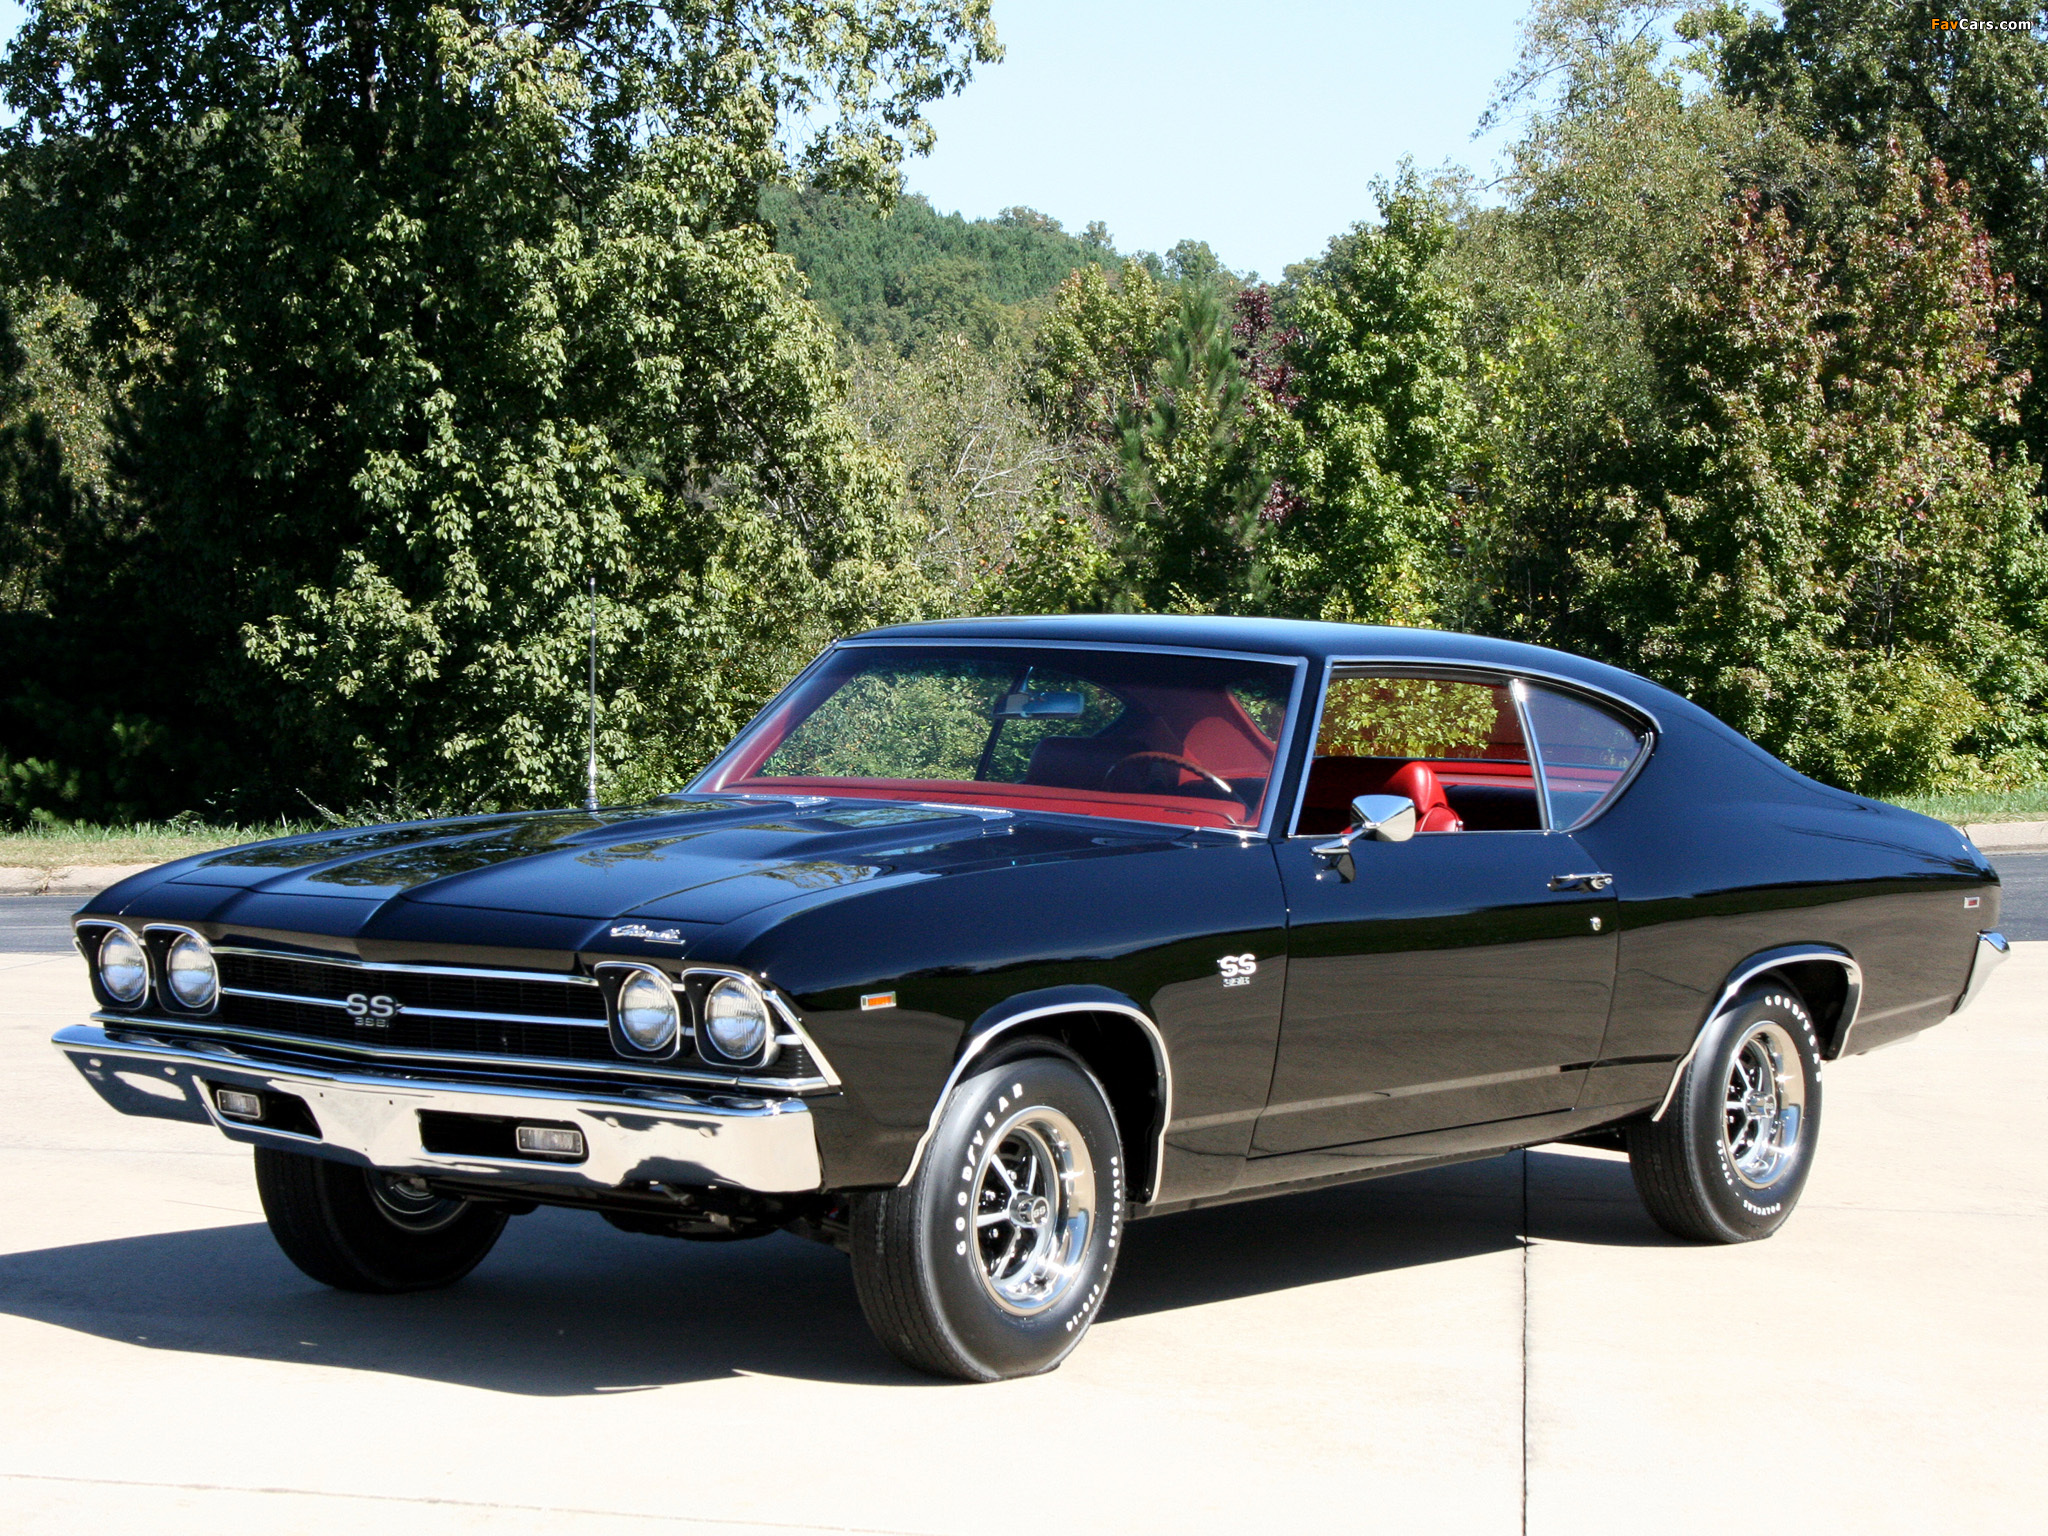 Wallpapers of Chevrolet Chevelle SS 396 Hardtop Coupe 1969 2048 x 2048x1536